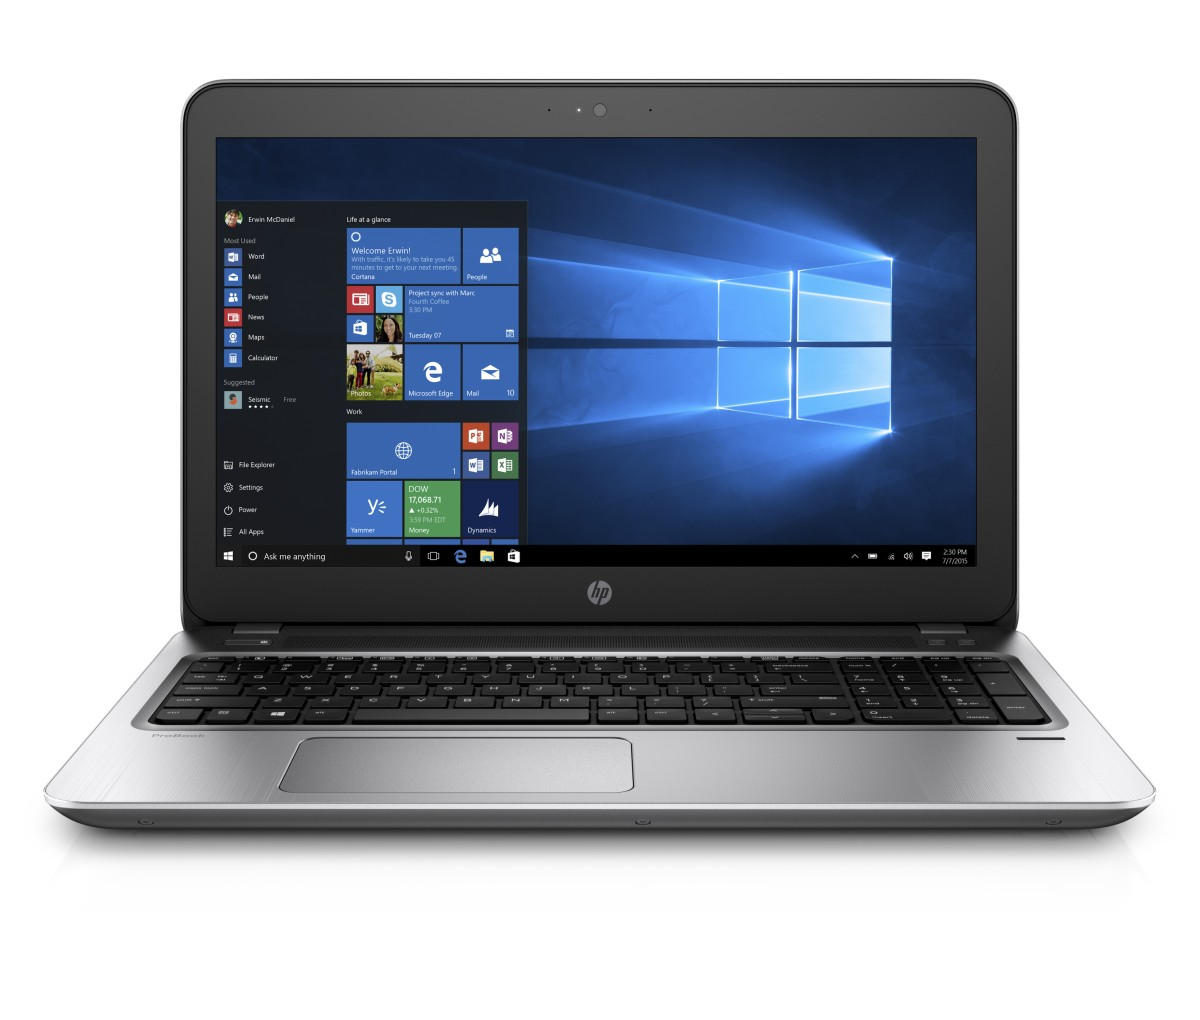 HP ProBook 455 G4 A10-9600P / 4GB / 500GB / 15,6'' FHD / backlit keyb / Win 10 pro